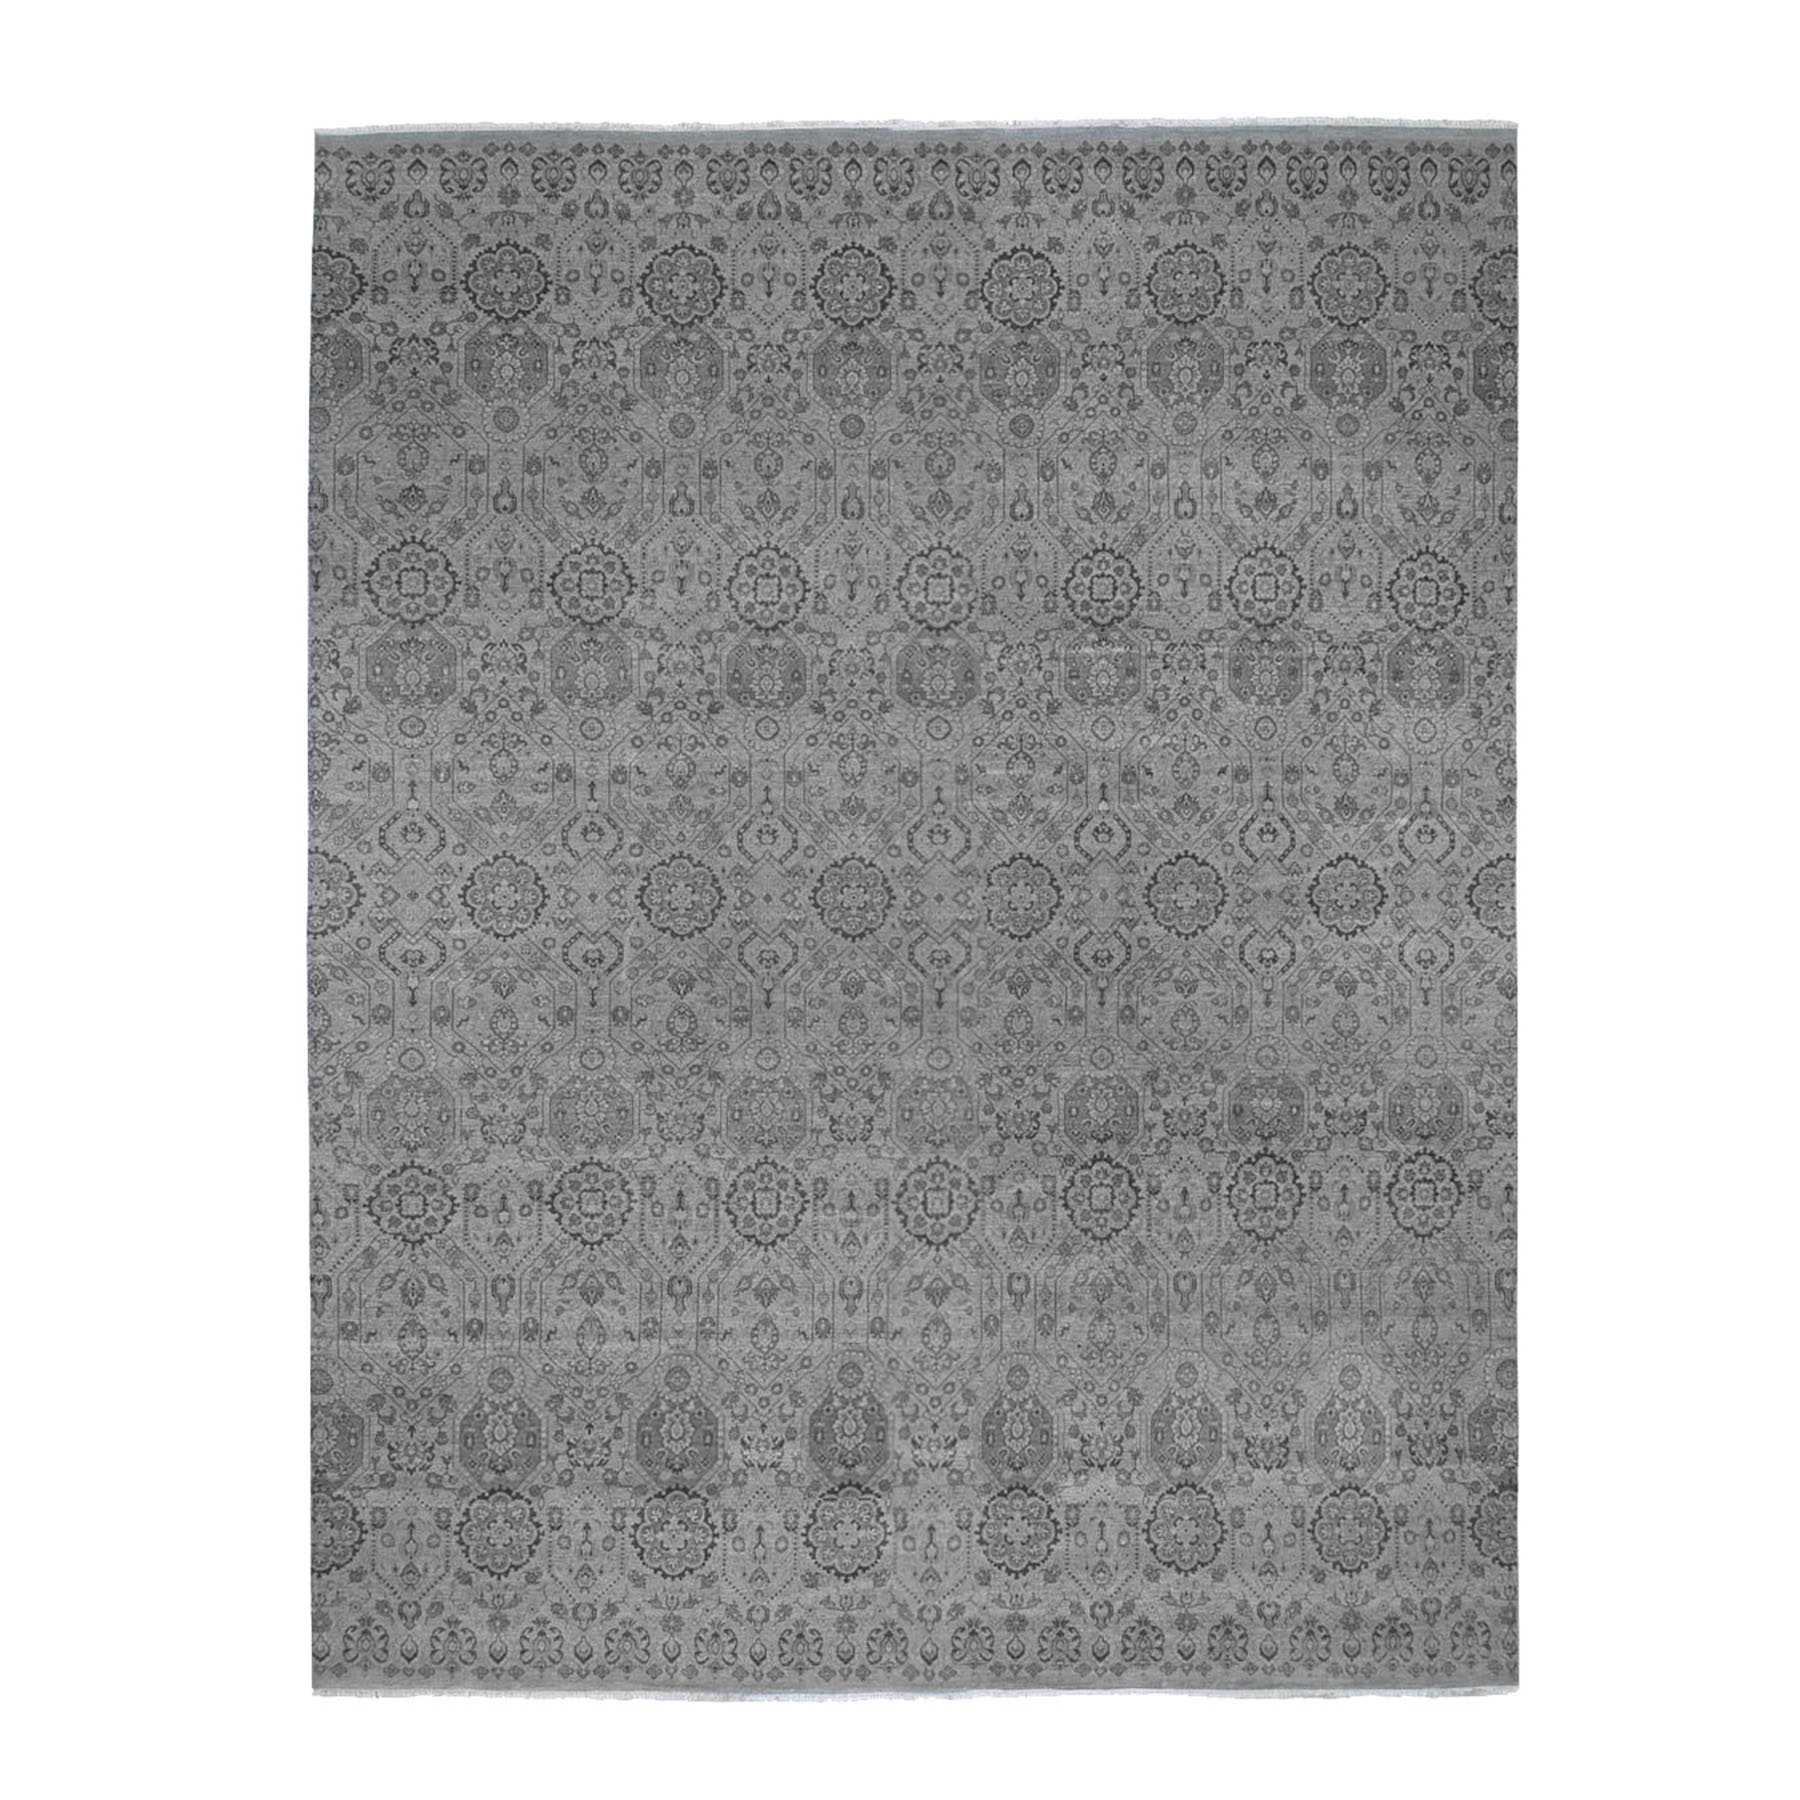 Mid Century Modern Collection Hand Knotted Grey Rug No: 199812